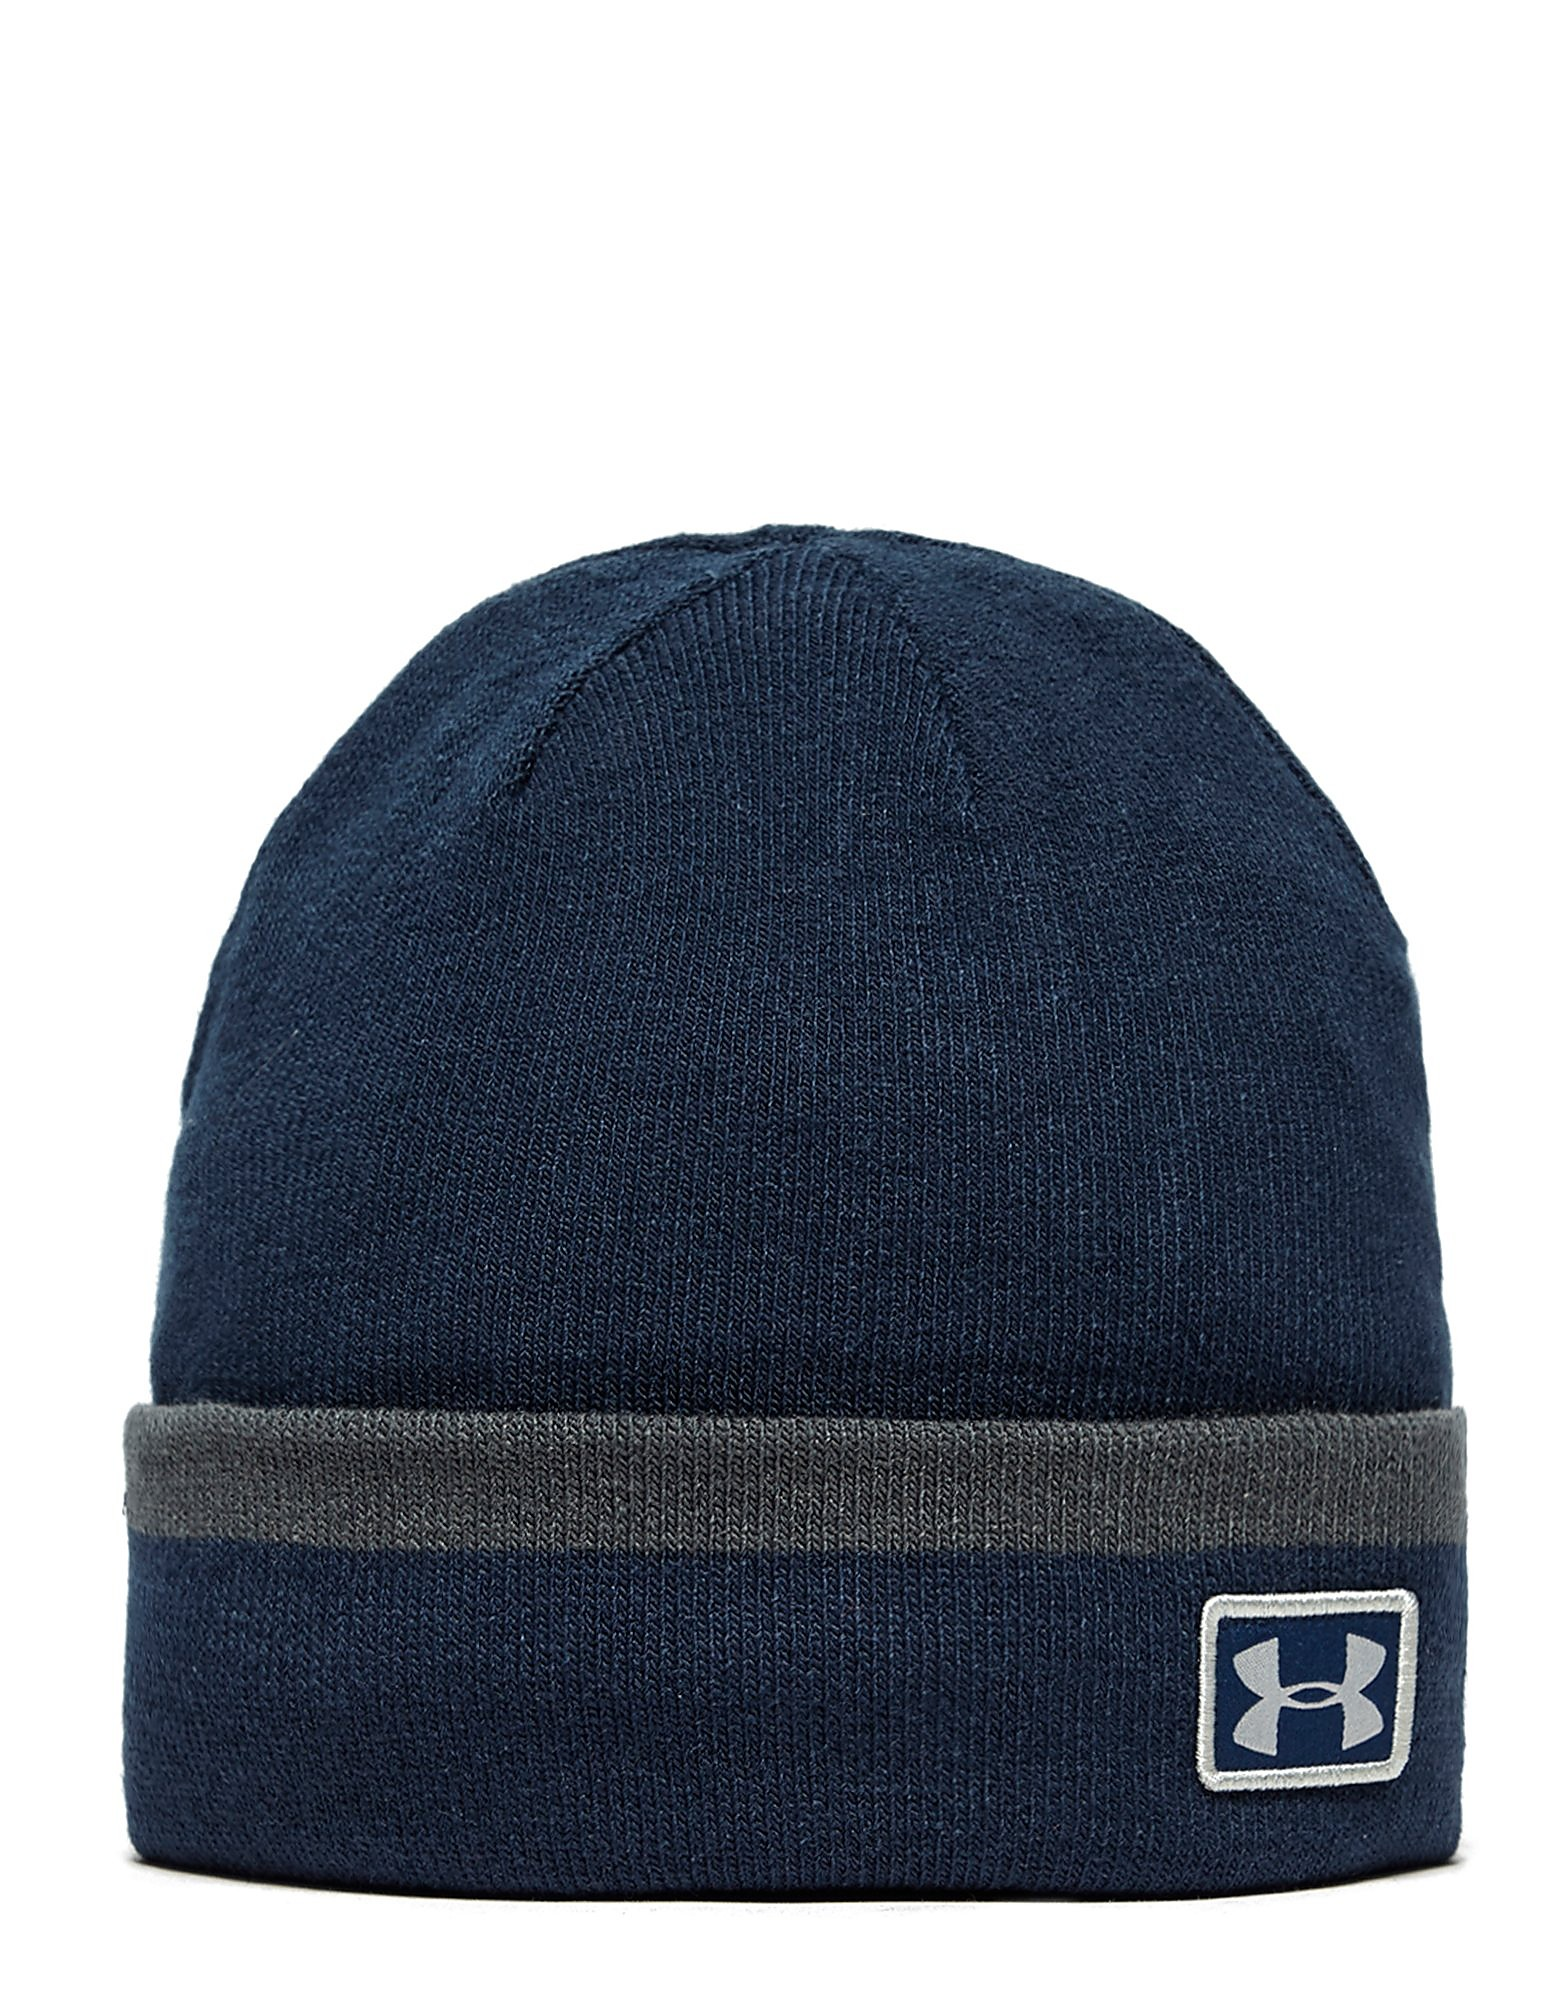 Under Armour ColdGear Infrared Cuff Sideline Beanie Hat